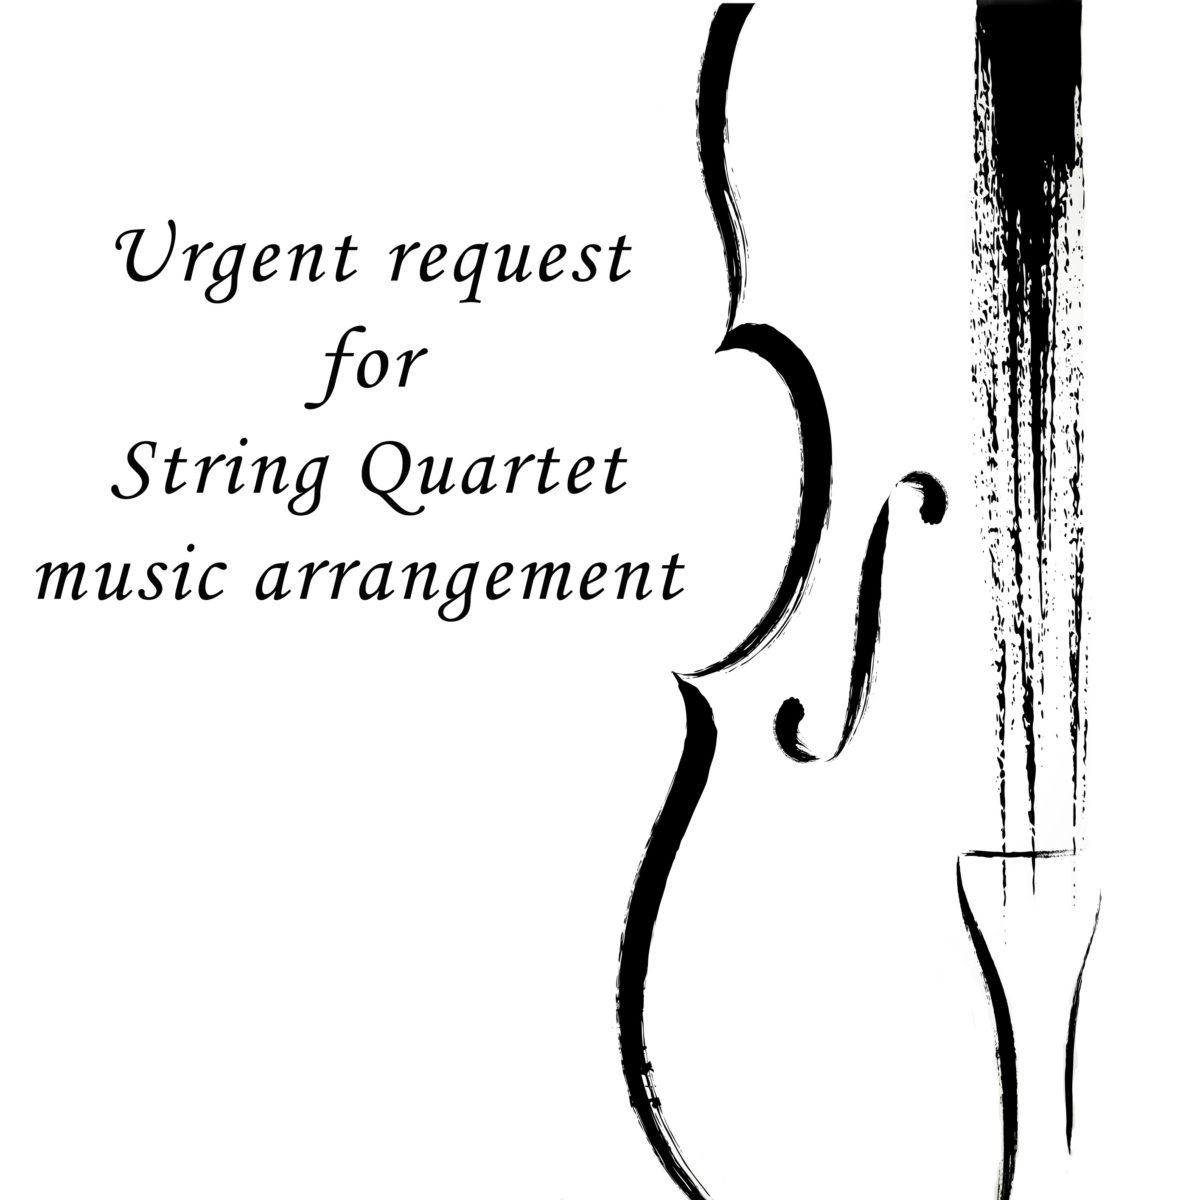 Urgent music arrangement for String Quartet